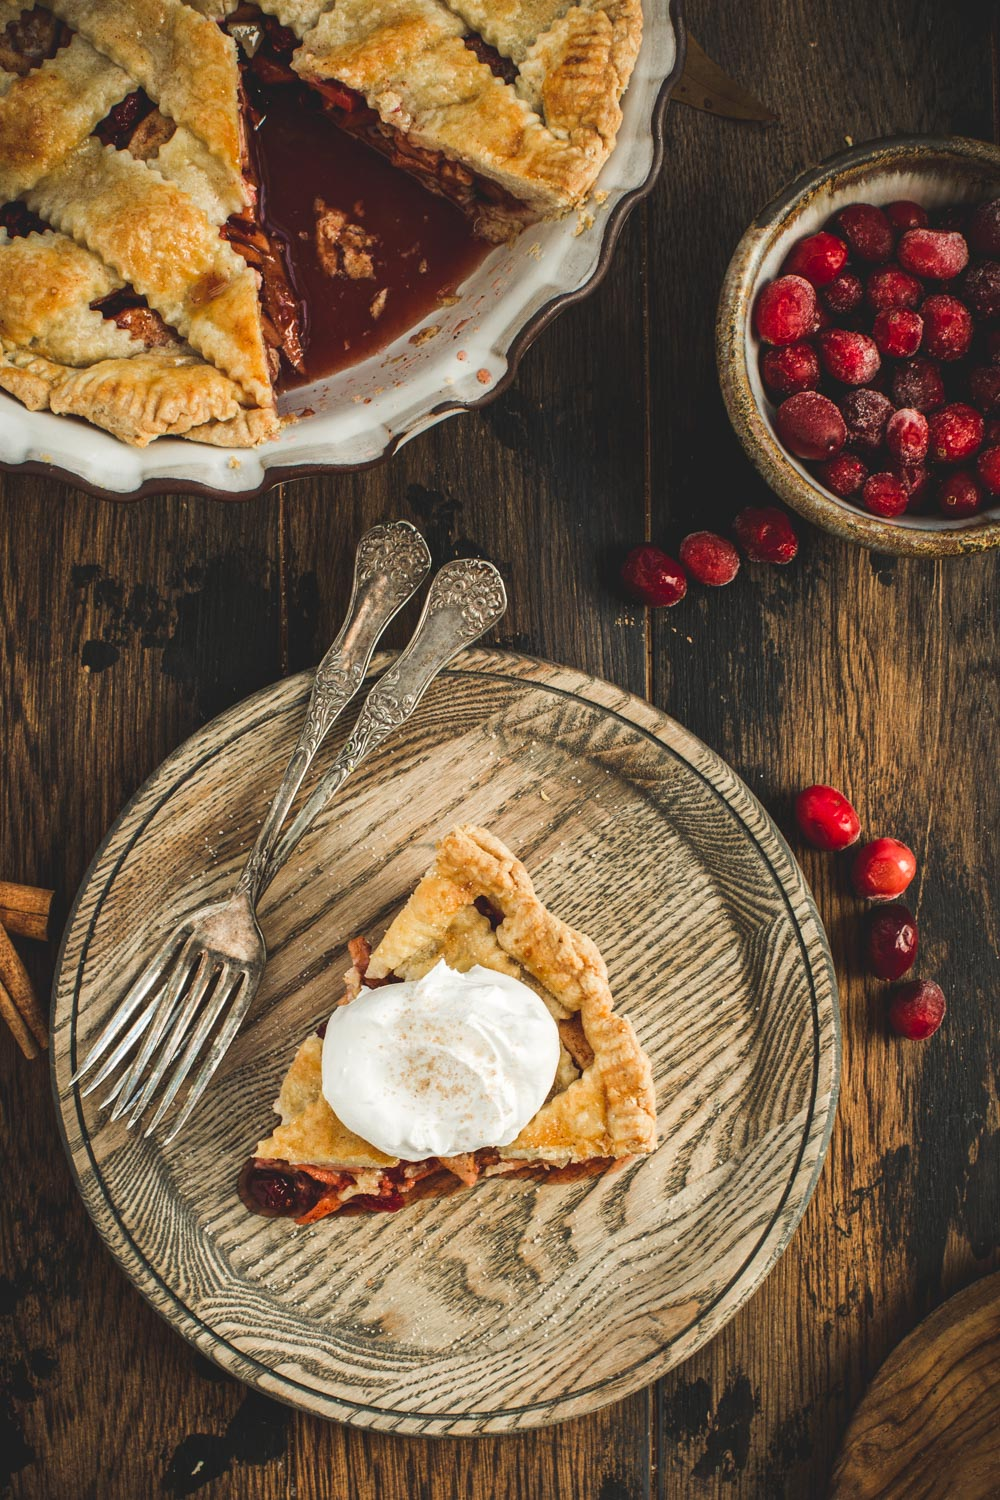 Slice of apple and cranberry pie topped with whipped cream on a wooden plate.